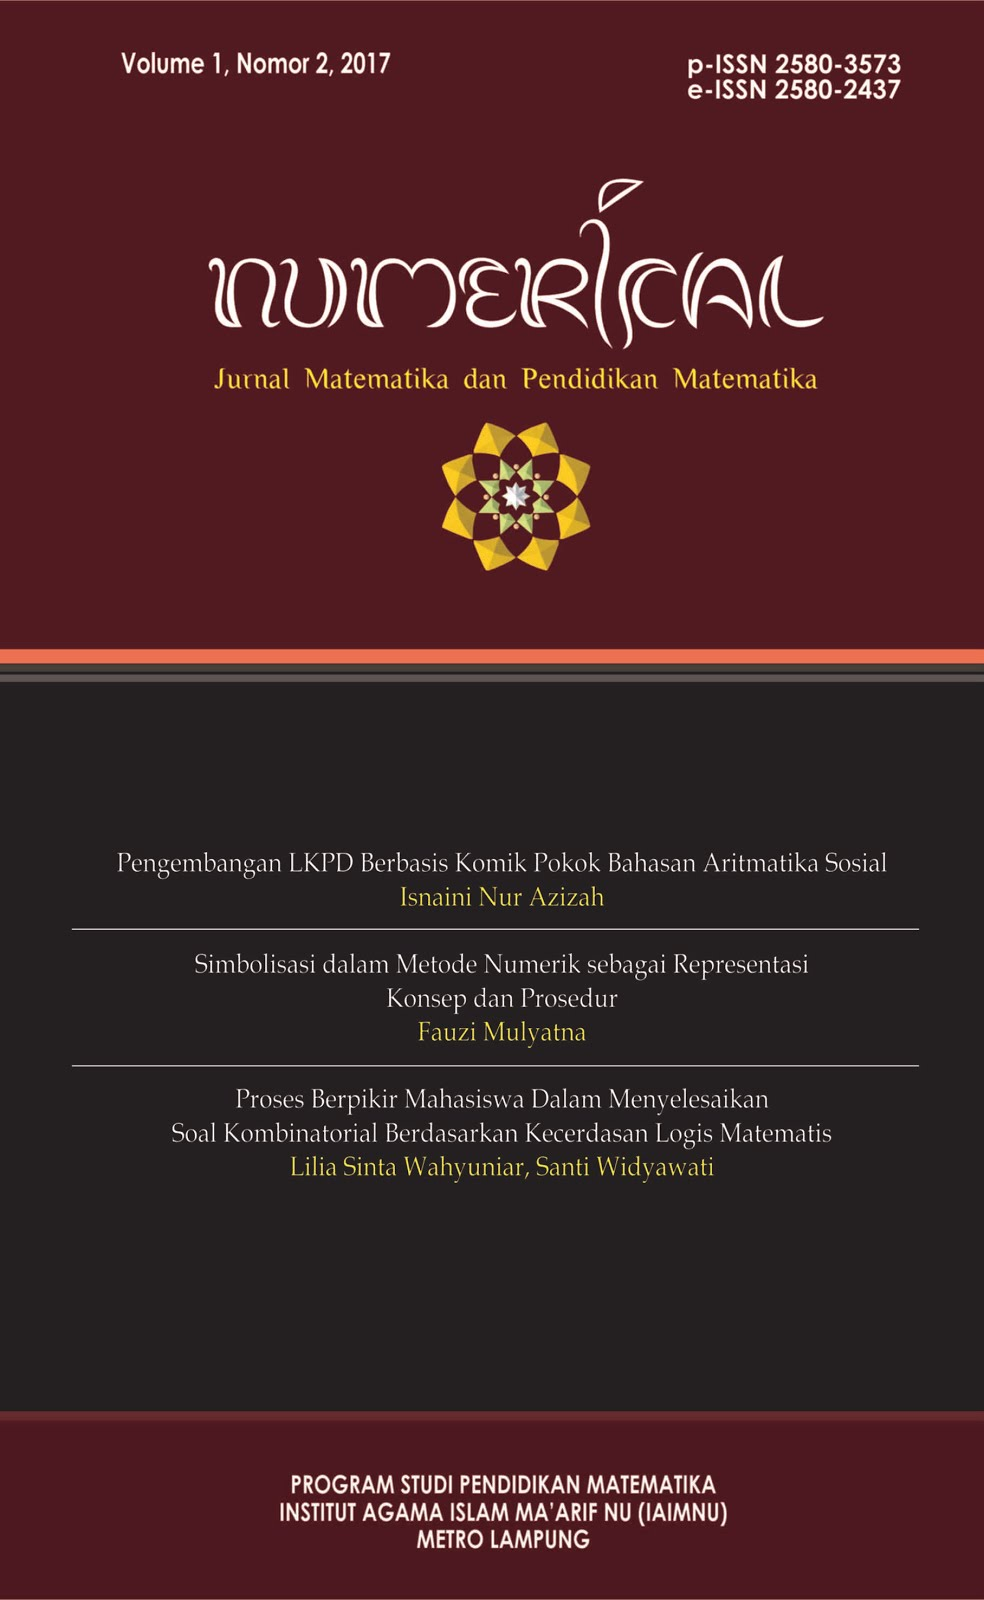 NUEMRICAL JURNAL MATEMATIKA